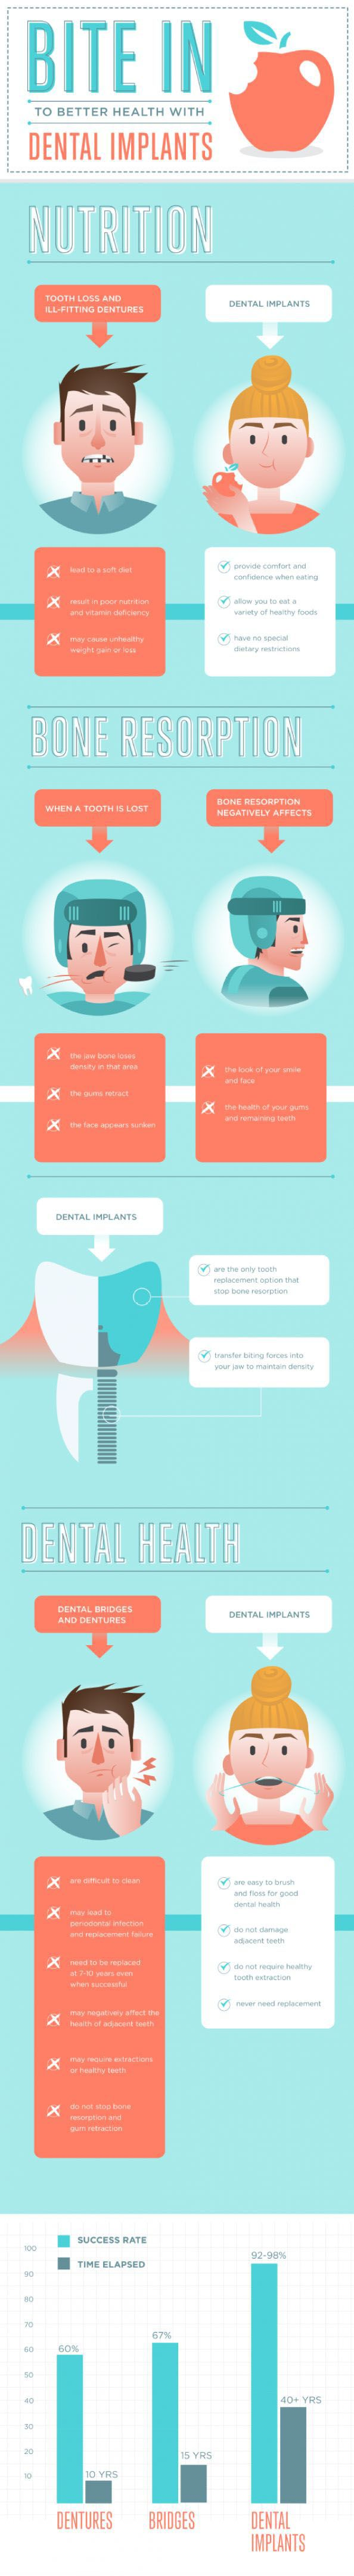 http://www.axisdental.ca/brampton-implant-dentistry.html Take advantage of our same day dental implant and permanent teeth services. Dental implants are now cost $1000 only.